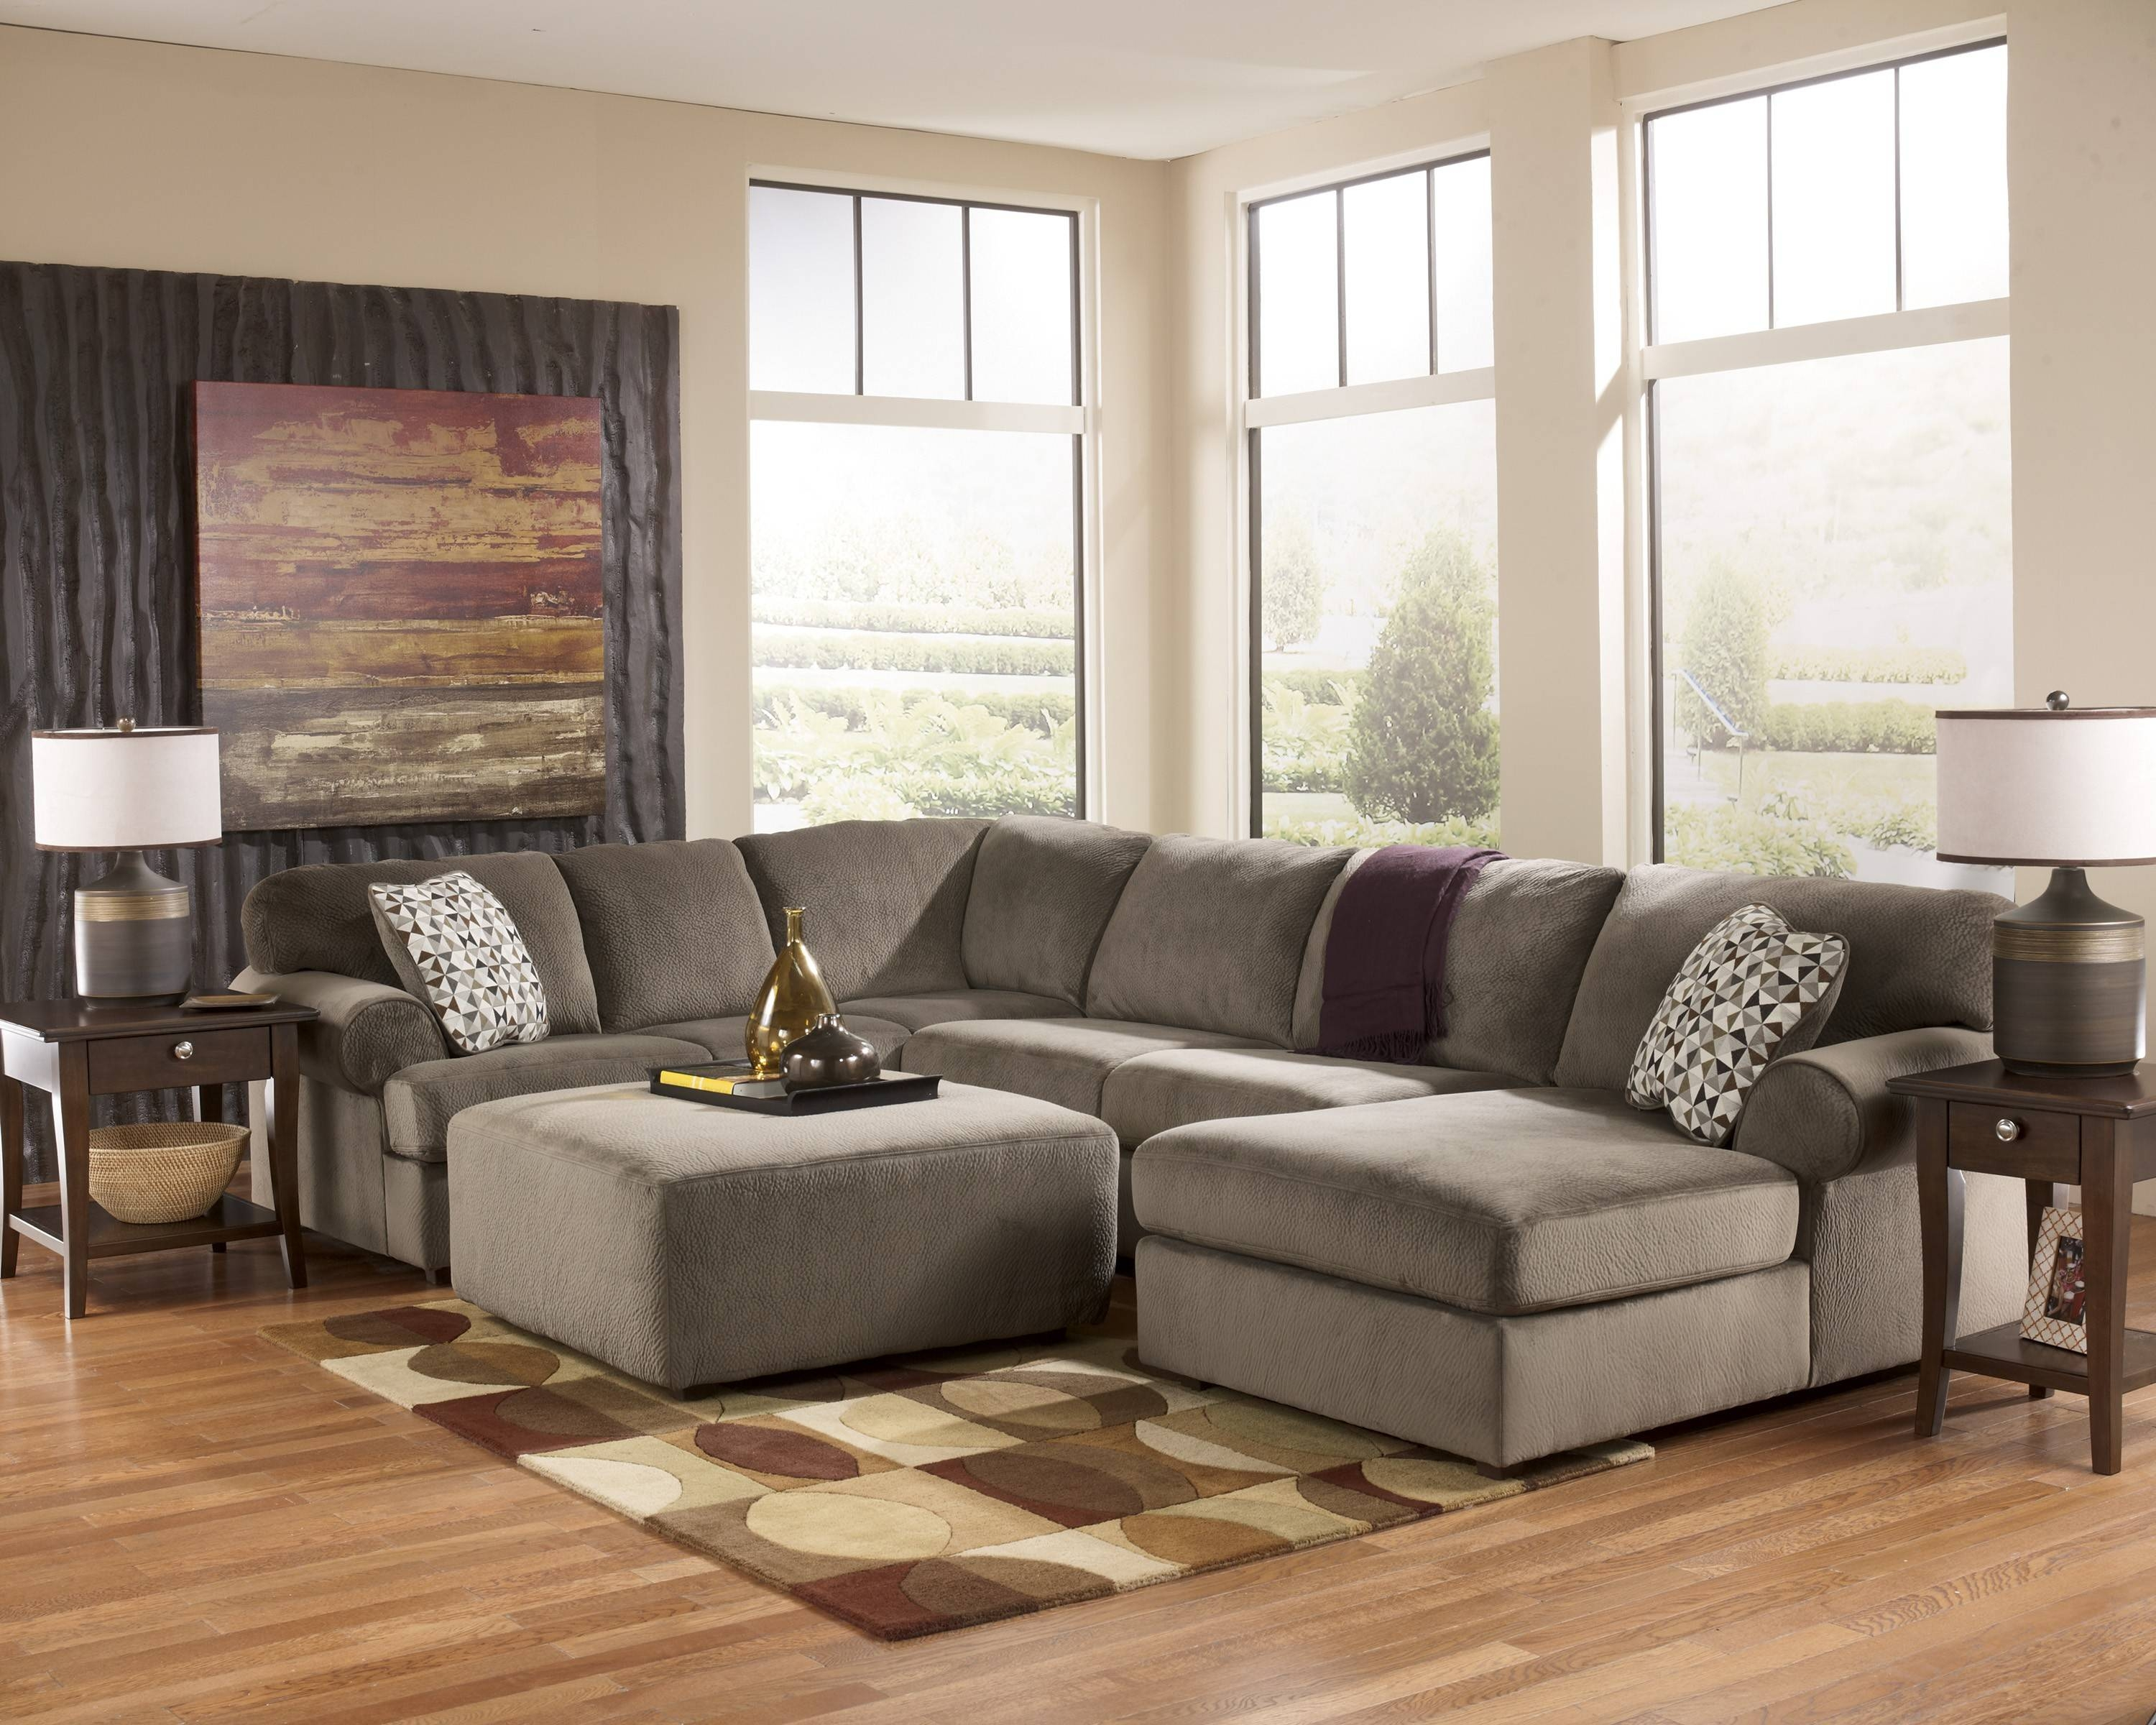 30 Inspirations of Sectional Sofa With Oversized Ottoman